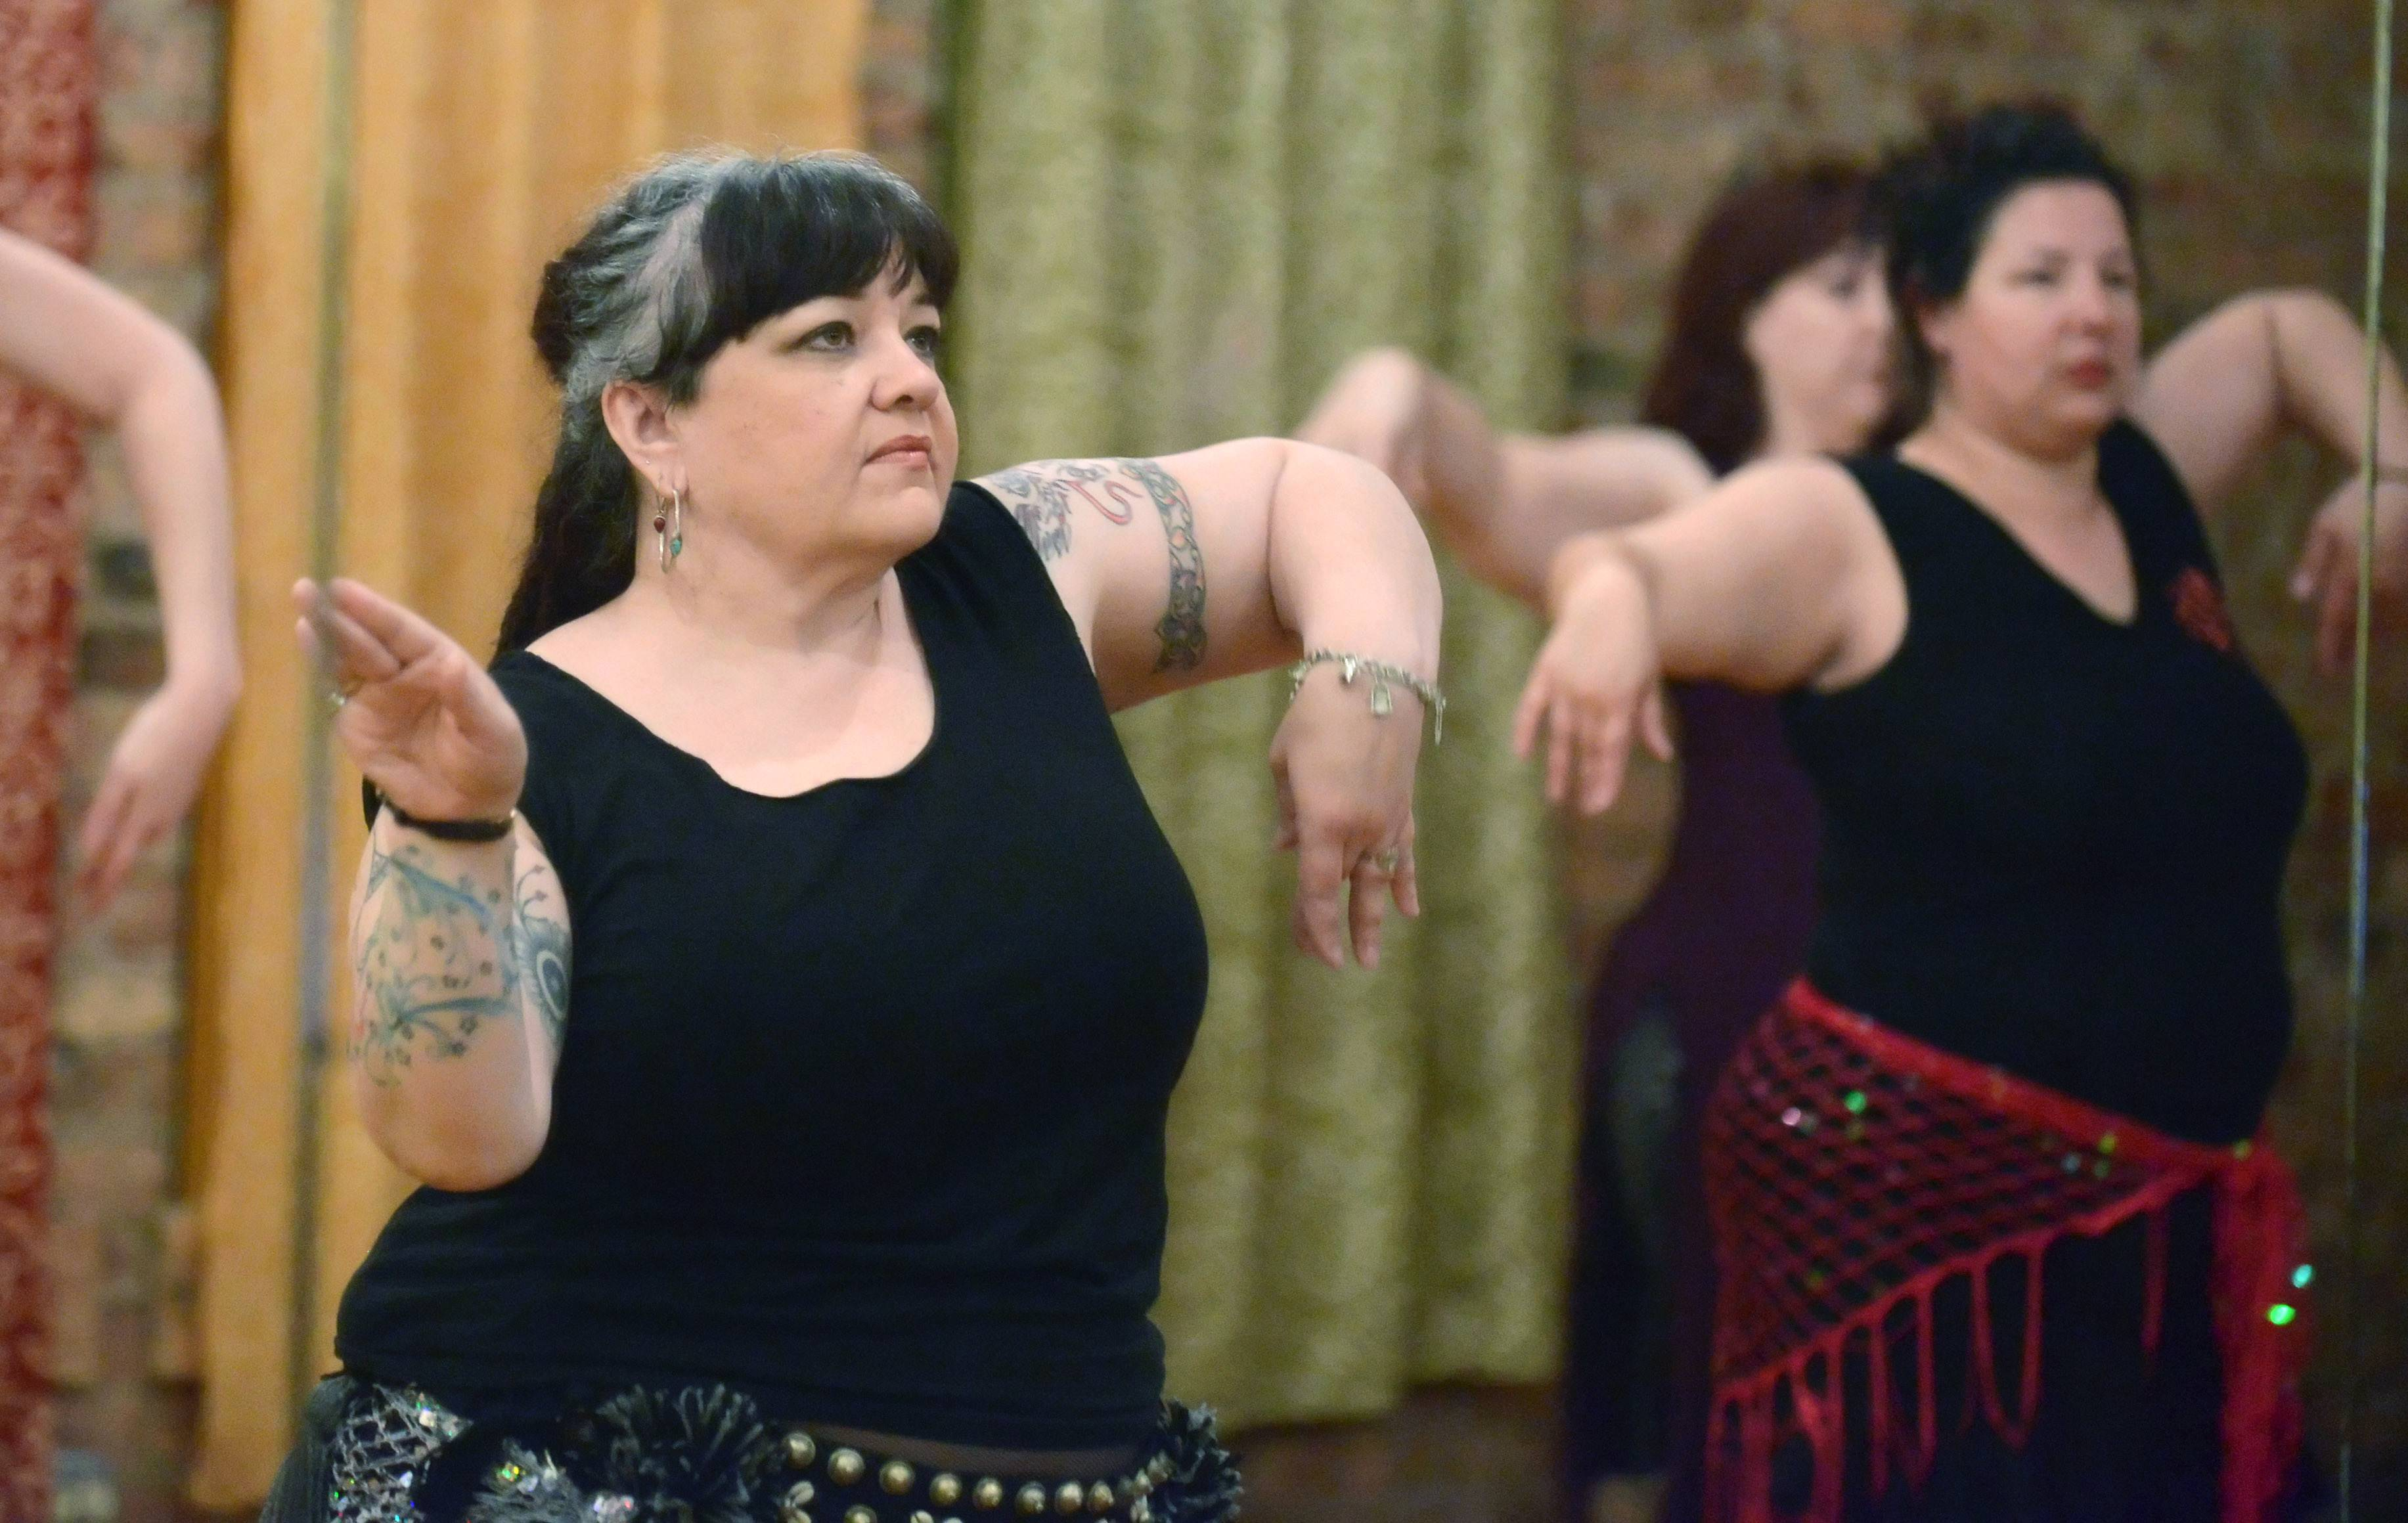 Belly dance instructor and performer Christina King works with students in the Tribal Fusion Level 3 class at her Eastern Grooves Dance Studio in Elgin.